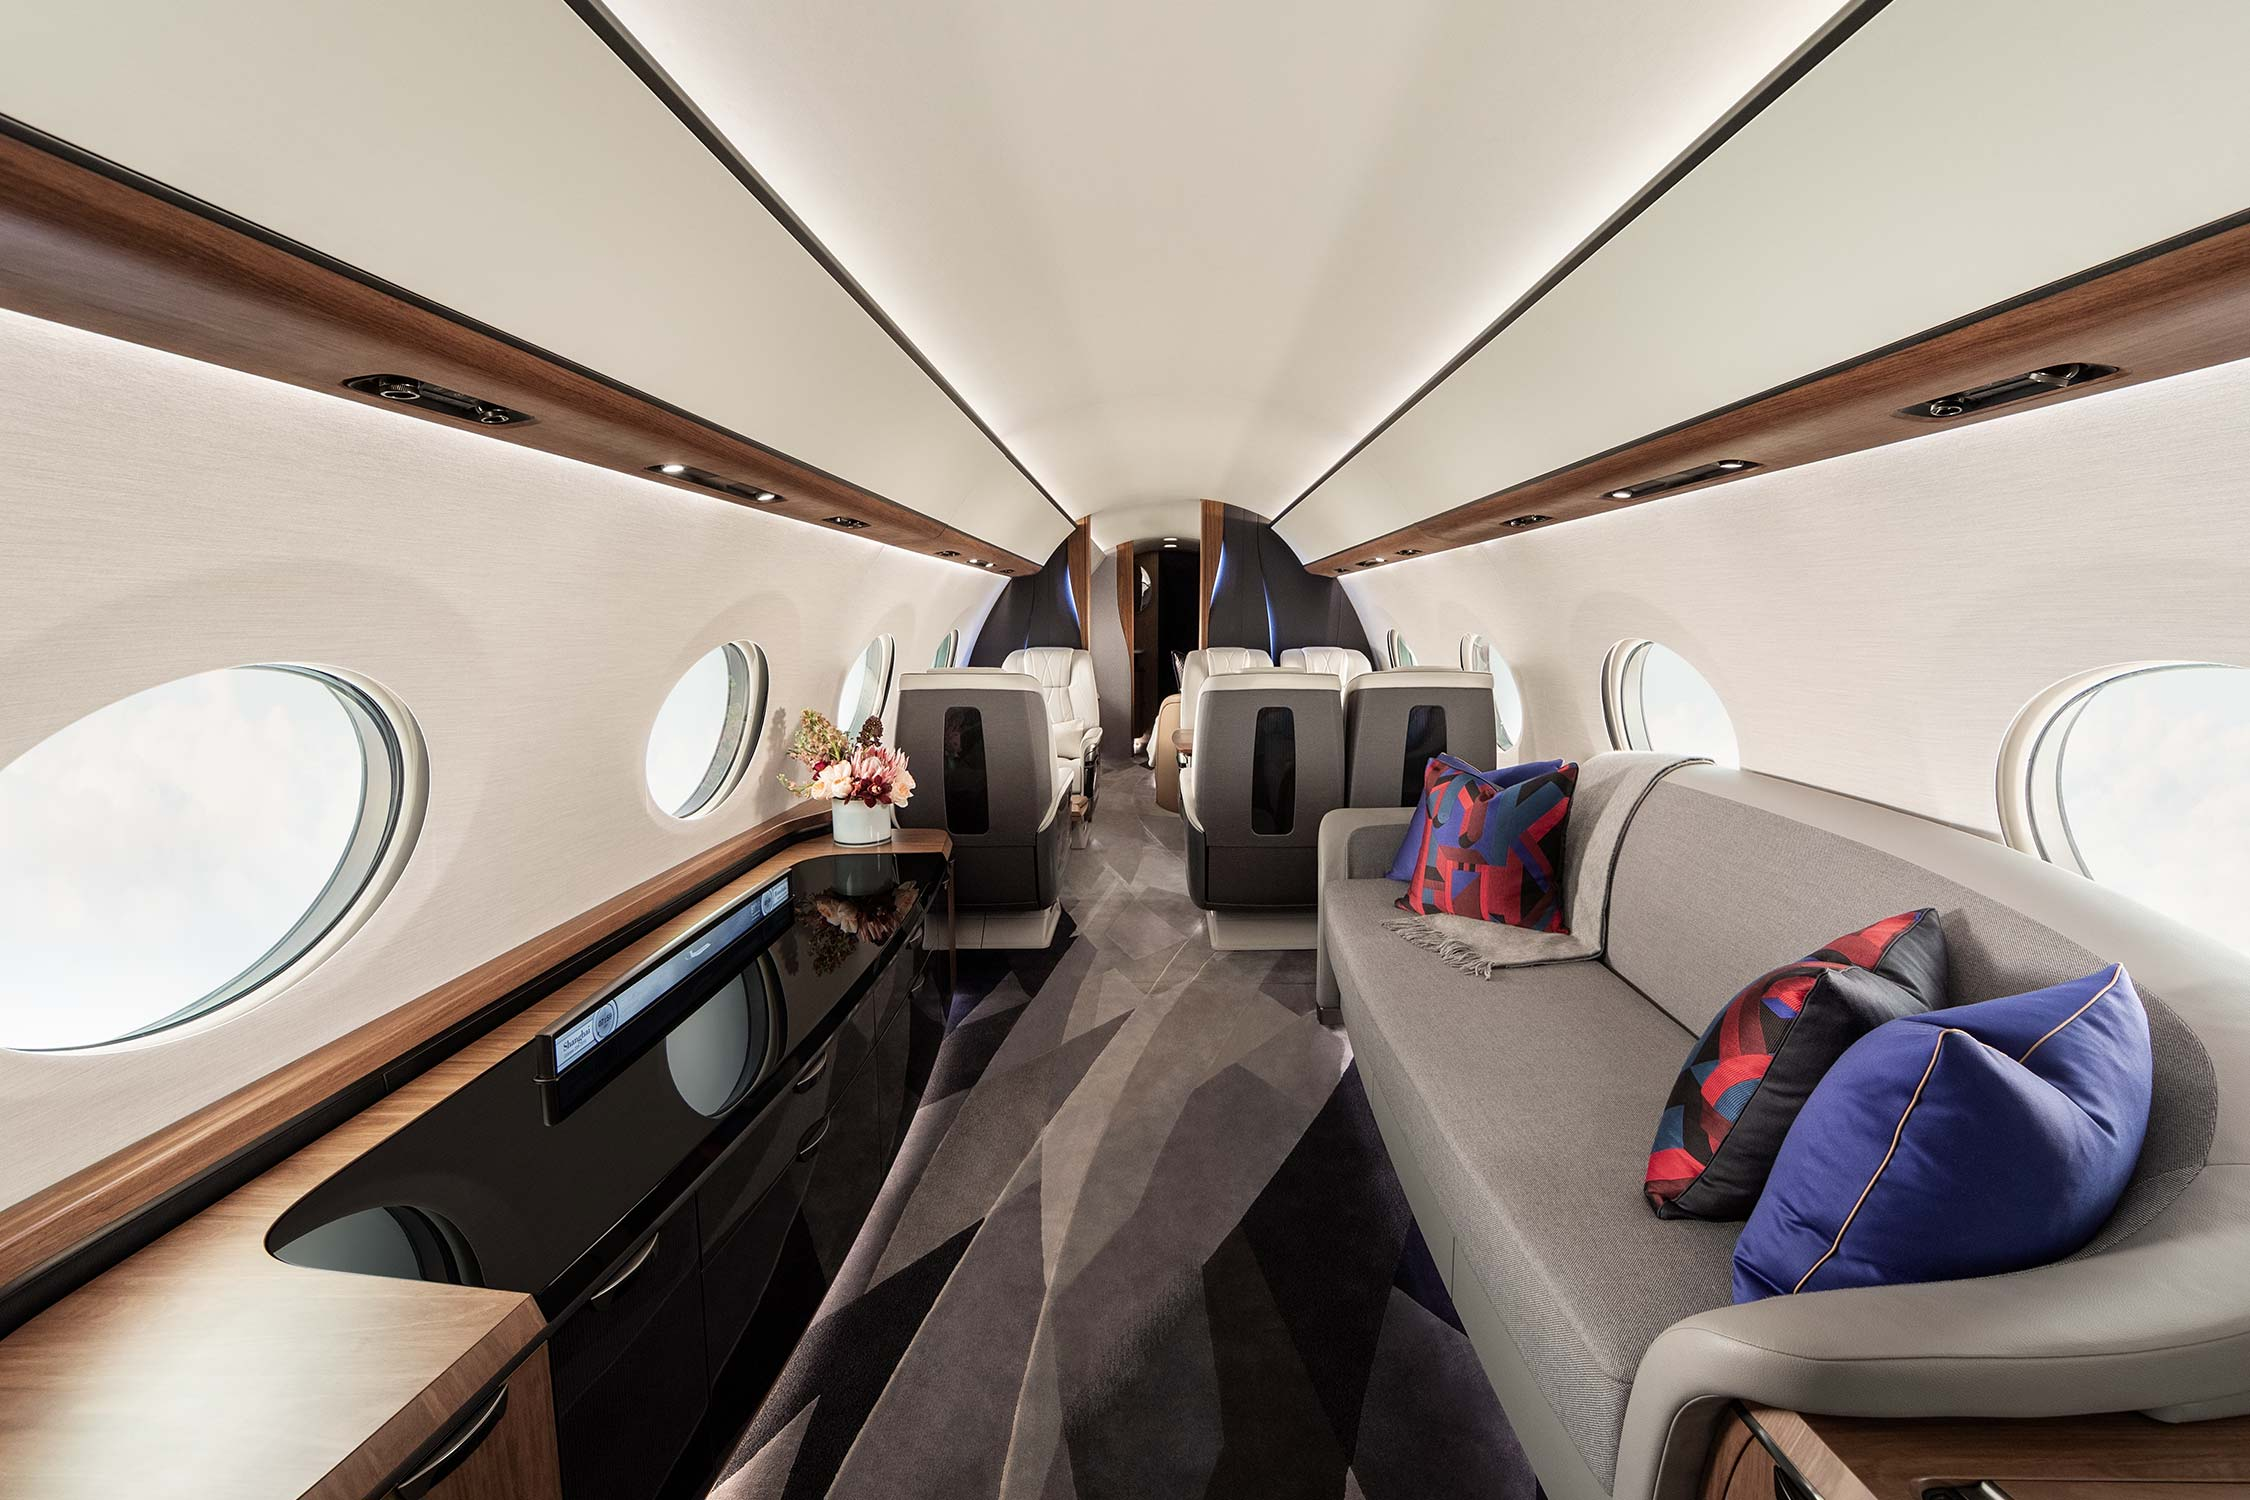 Divan with pillows in a private airplane